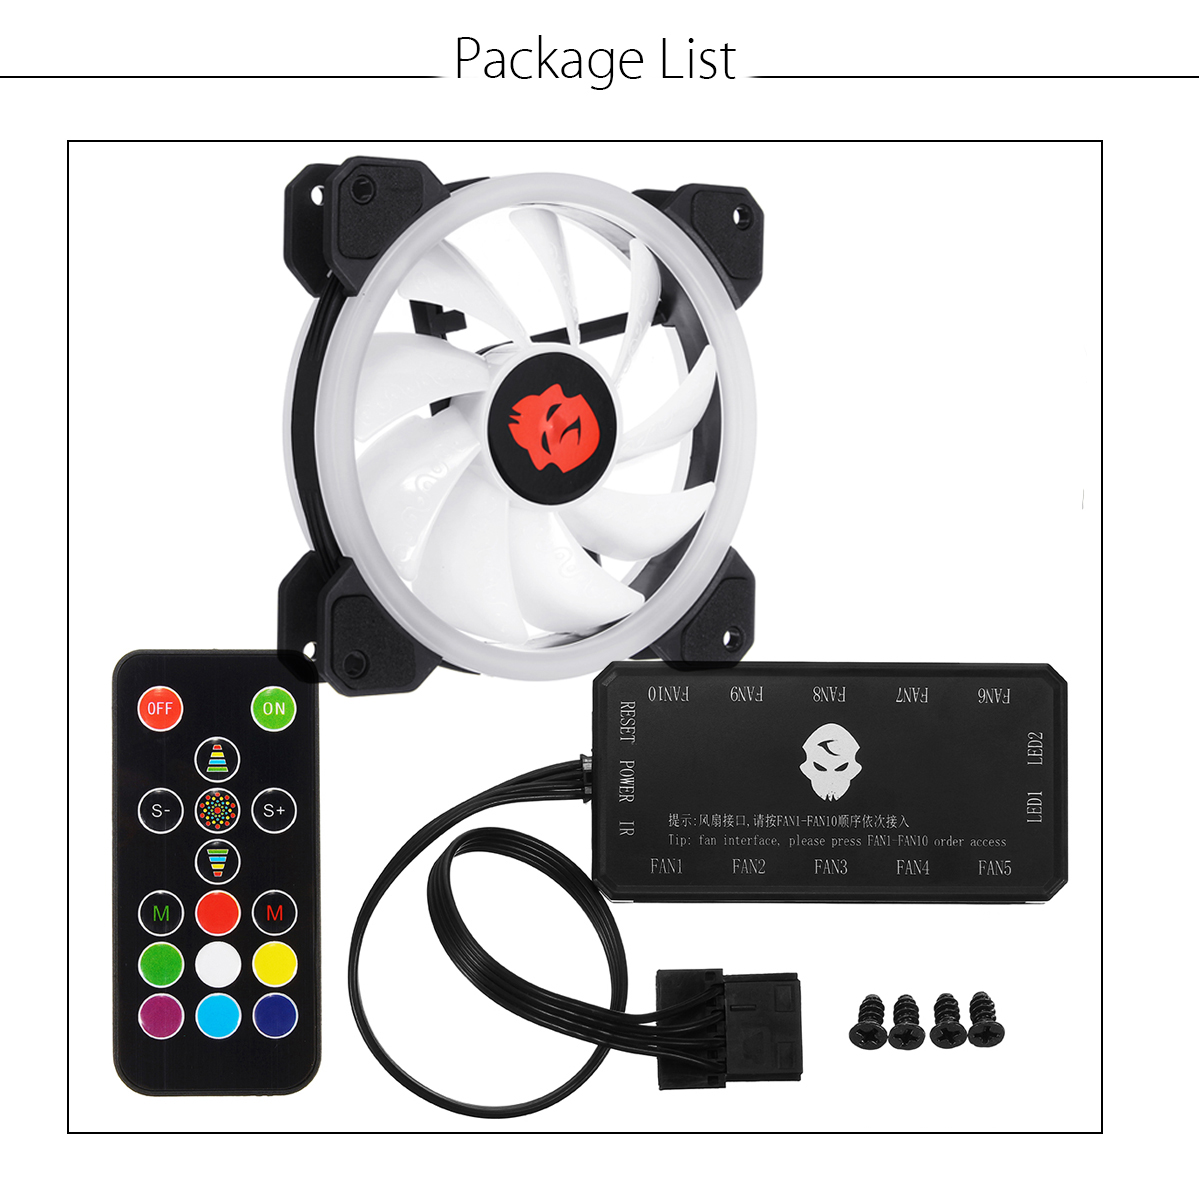 Computer Case PC RGB Cooling Fan Adjust LED 120mm Quiet Cooler + Remote Control